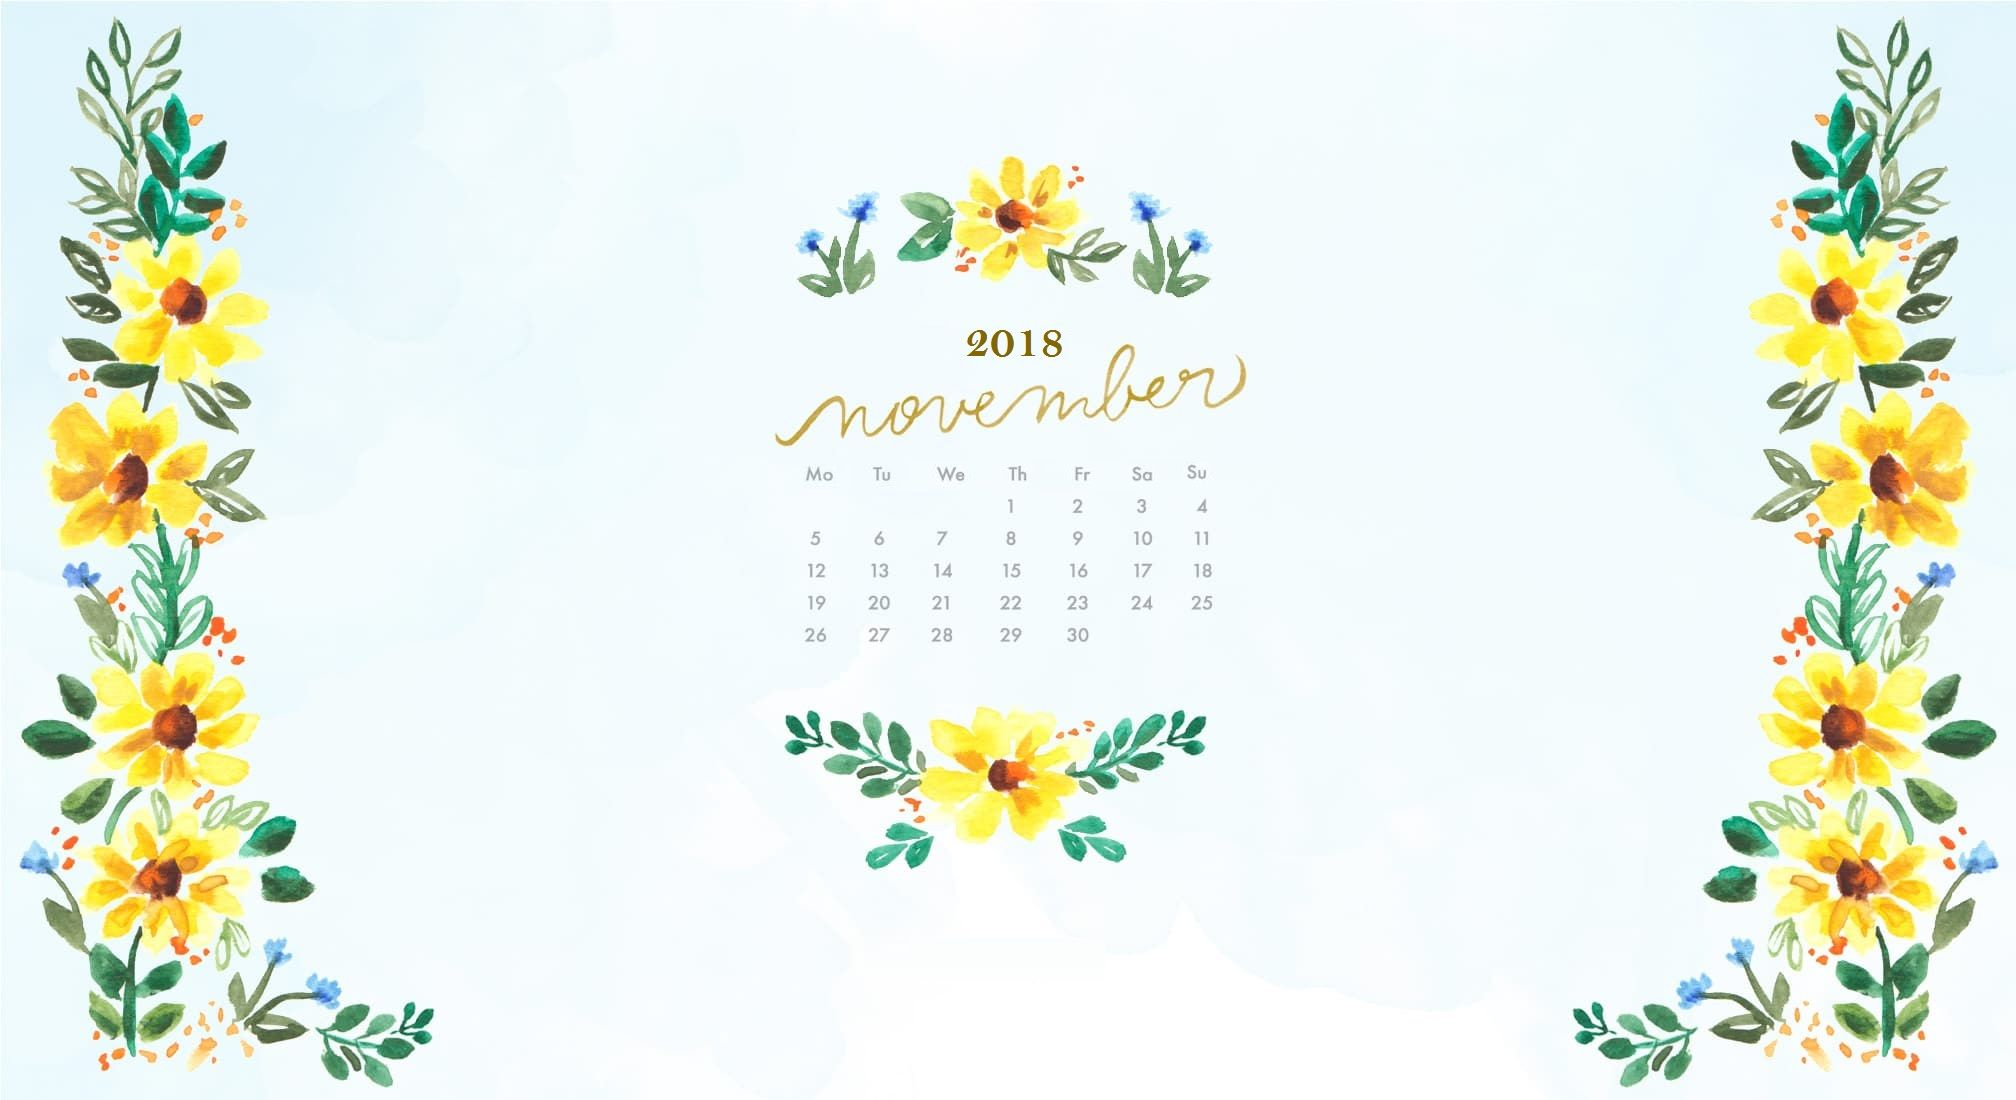 nov 2018 calendar wallpapers for smartphones, iphone, smart gadgets